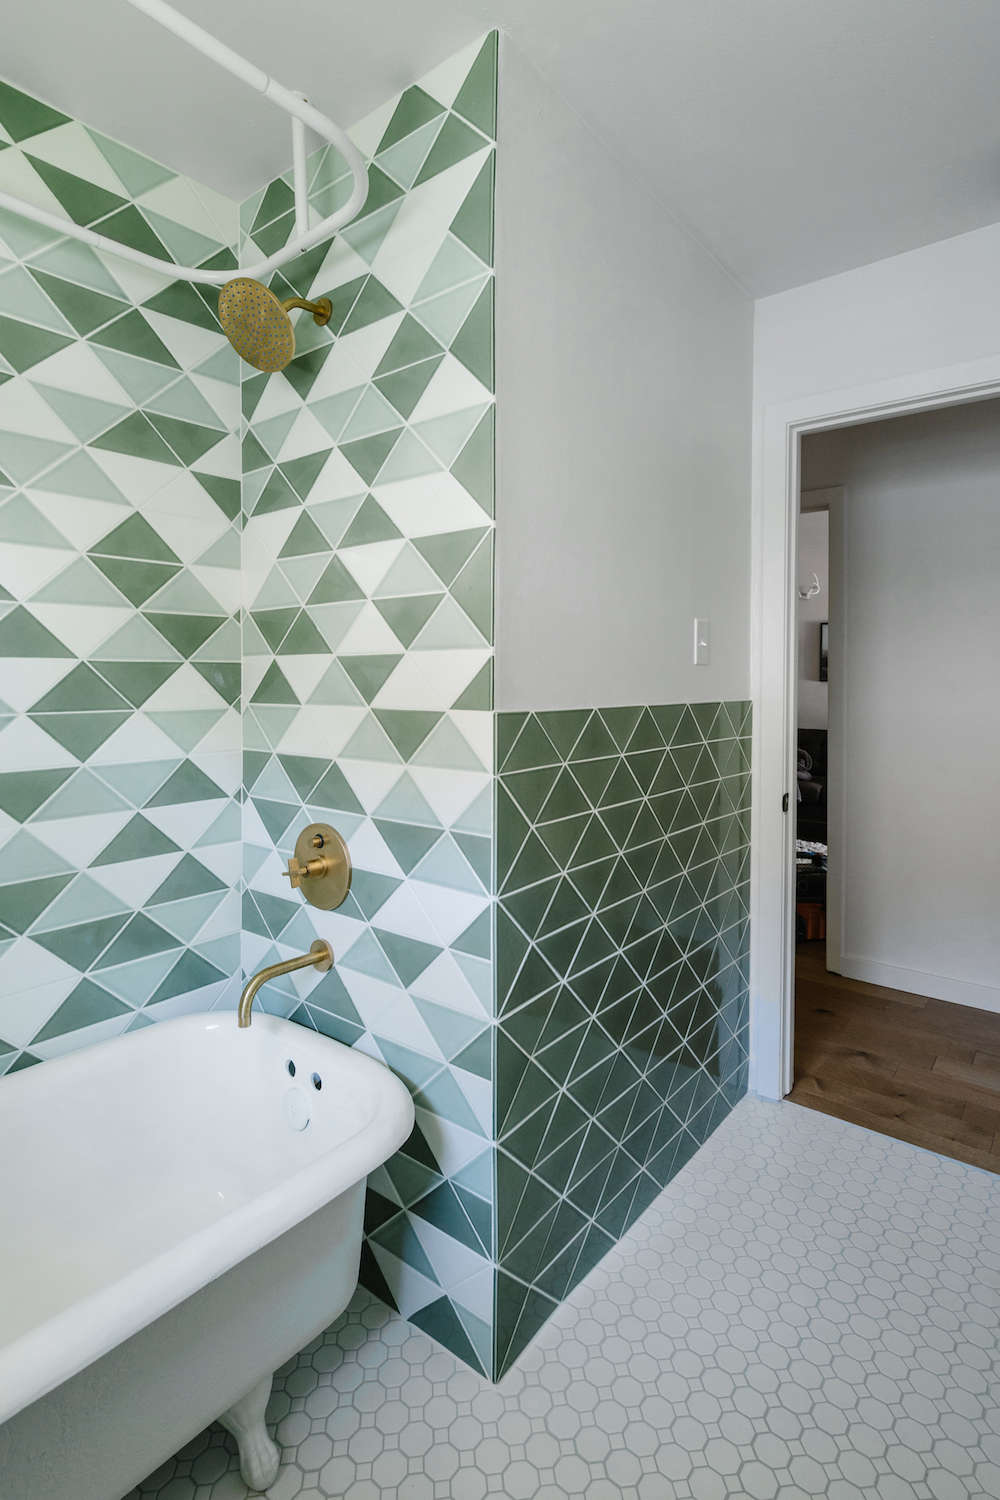 Before & After: Green Tiled Bathroom Conversion